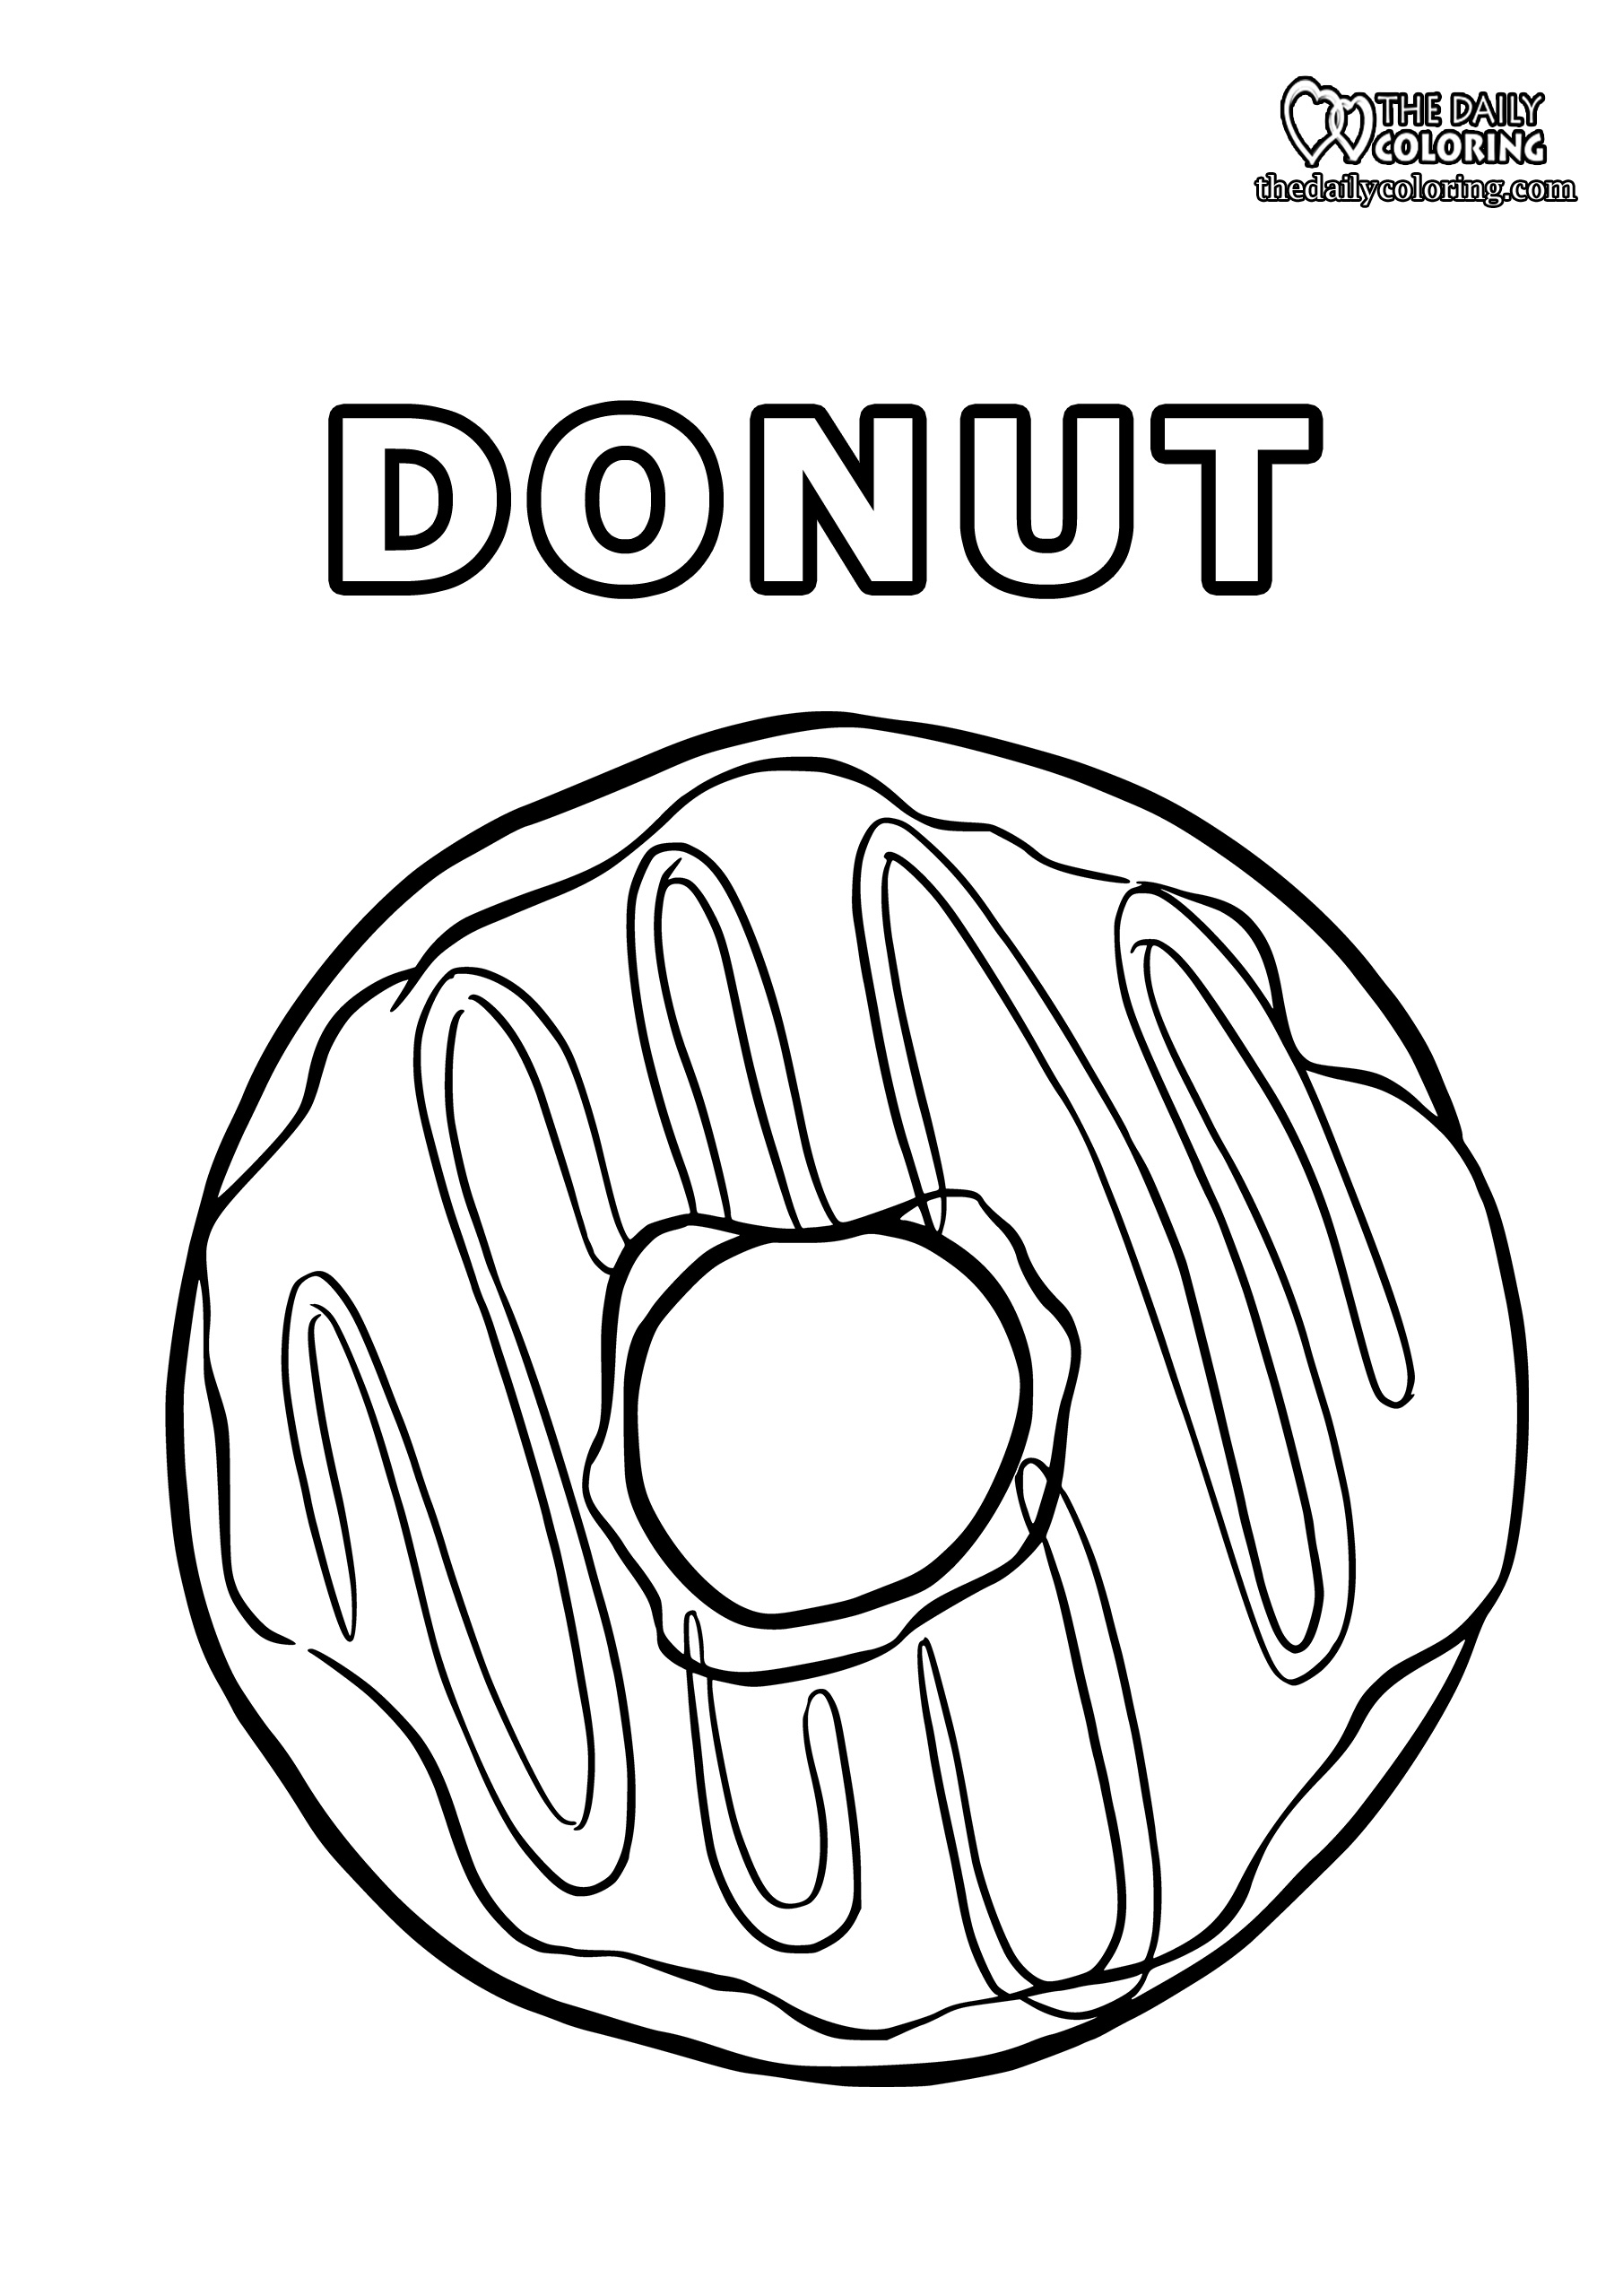 donut-coloring-page